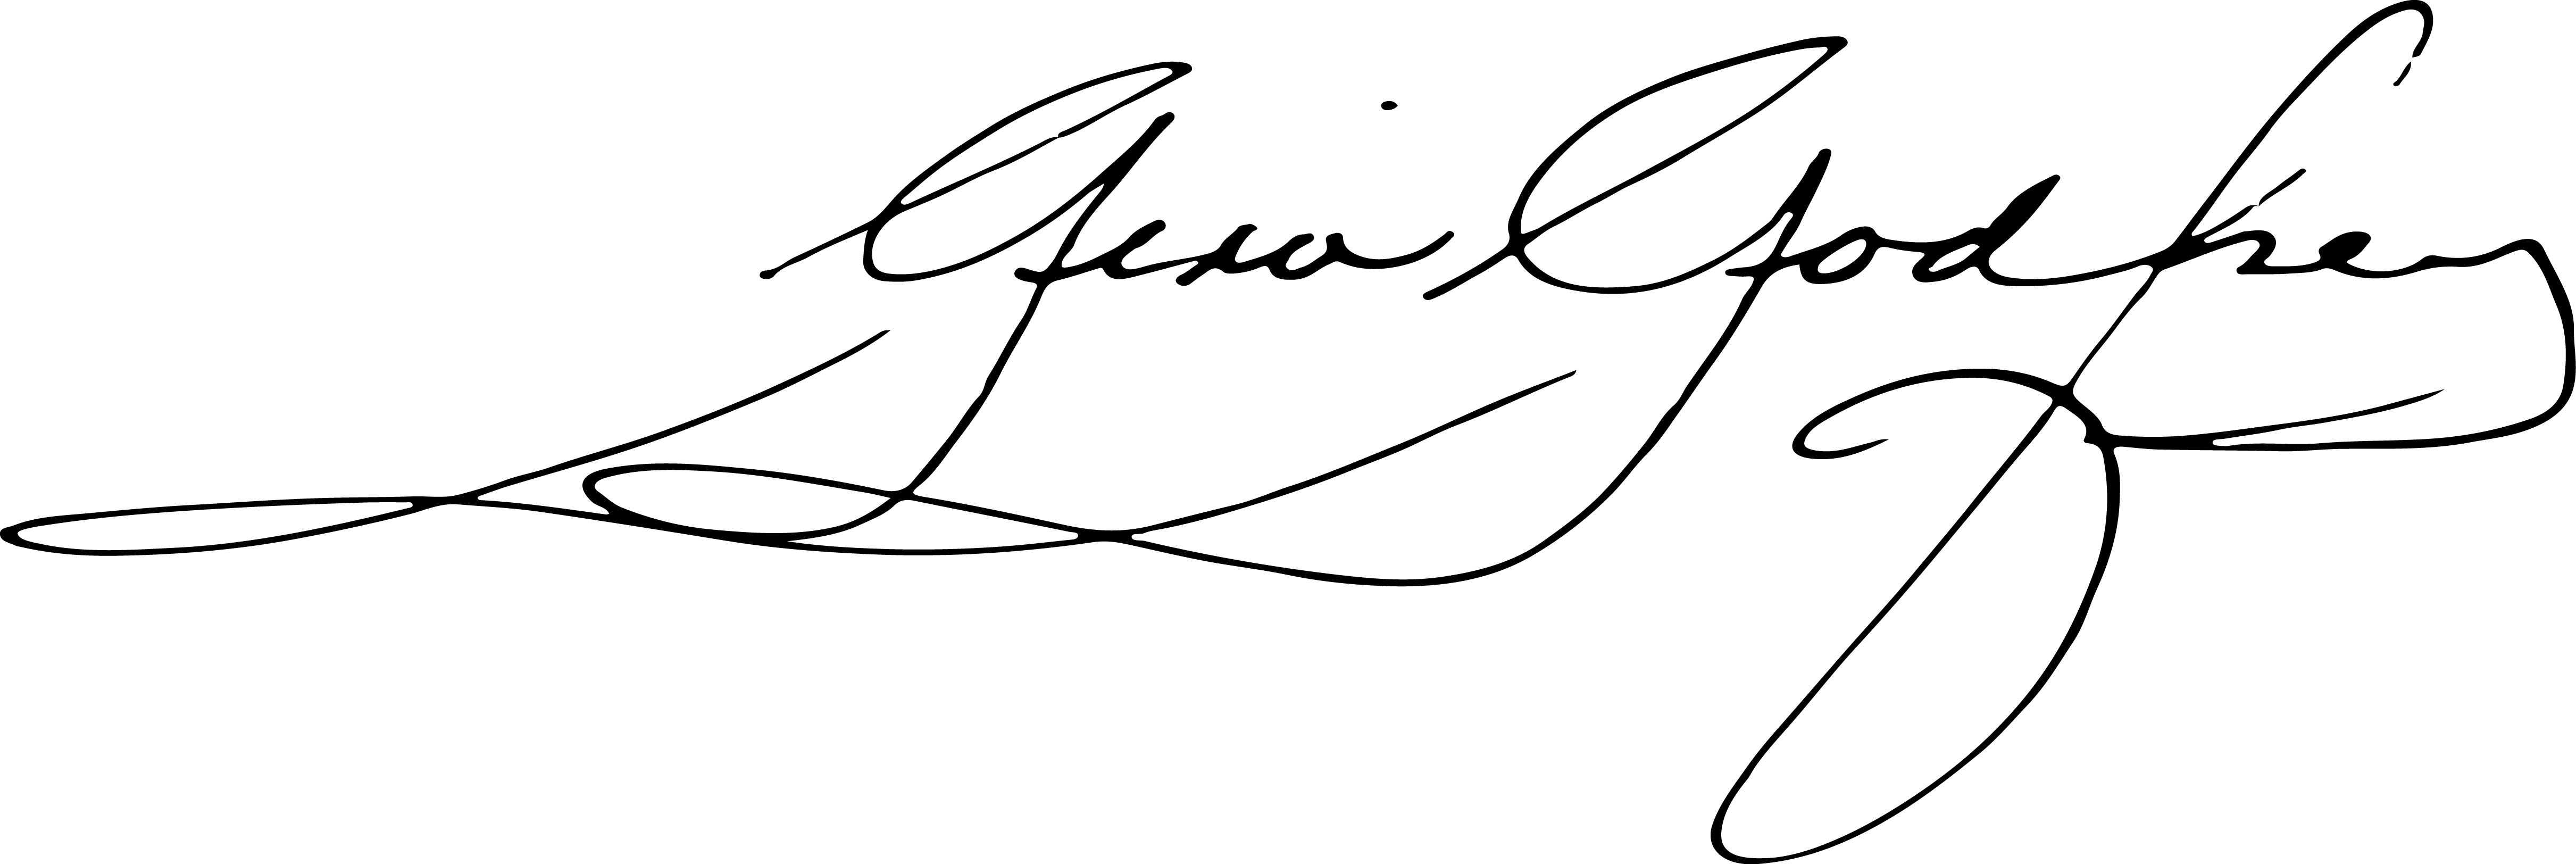 Gina Godfrey Signature